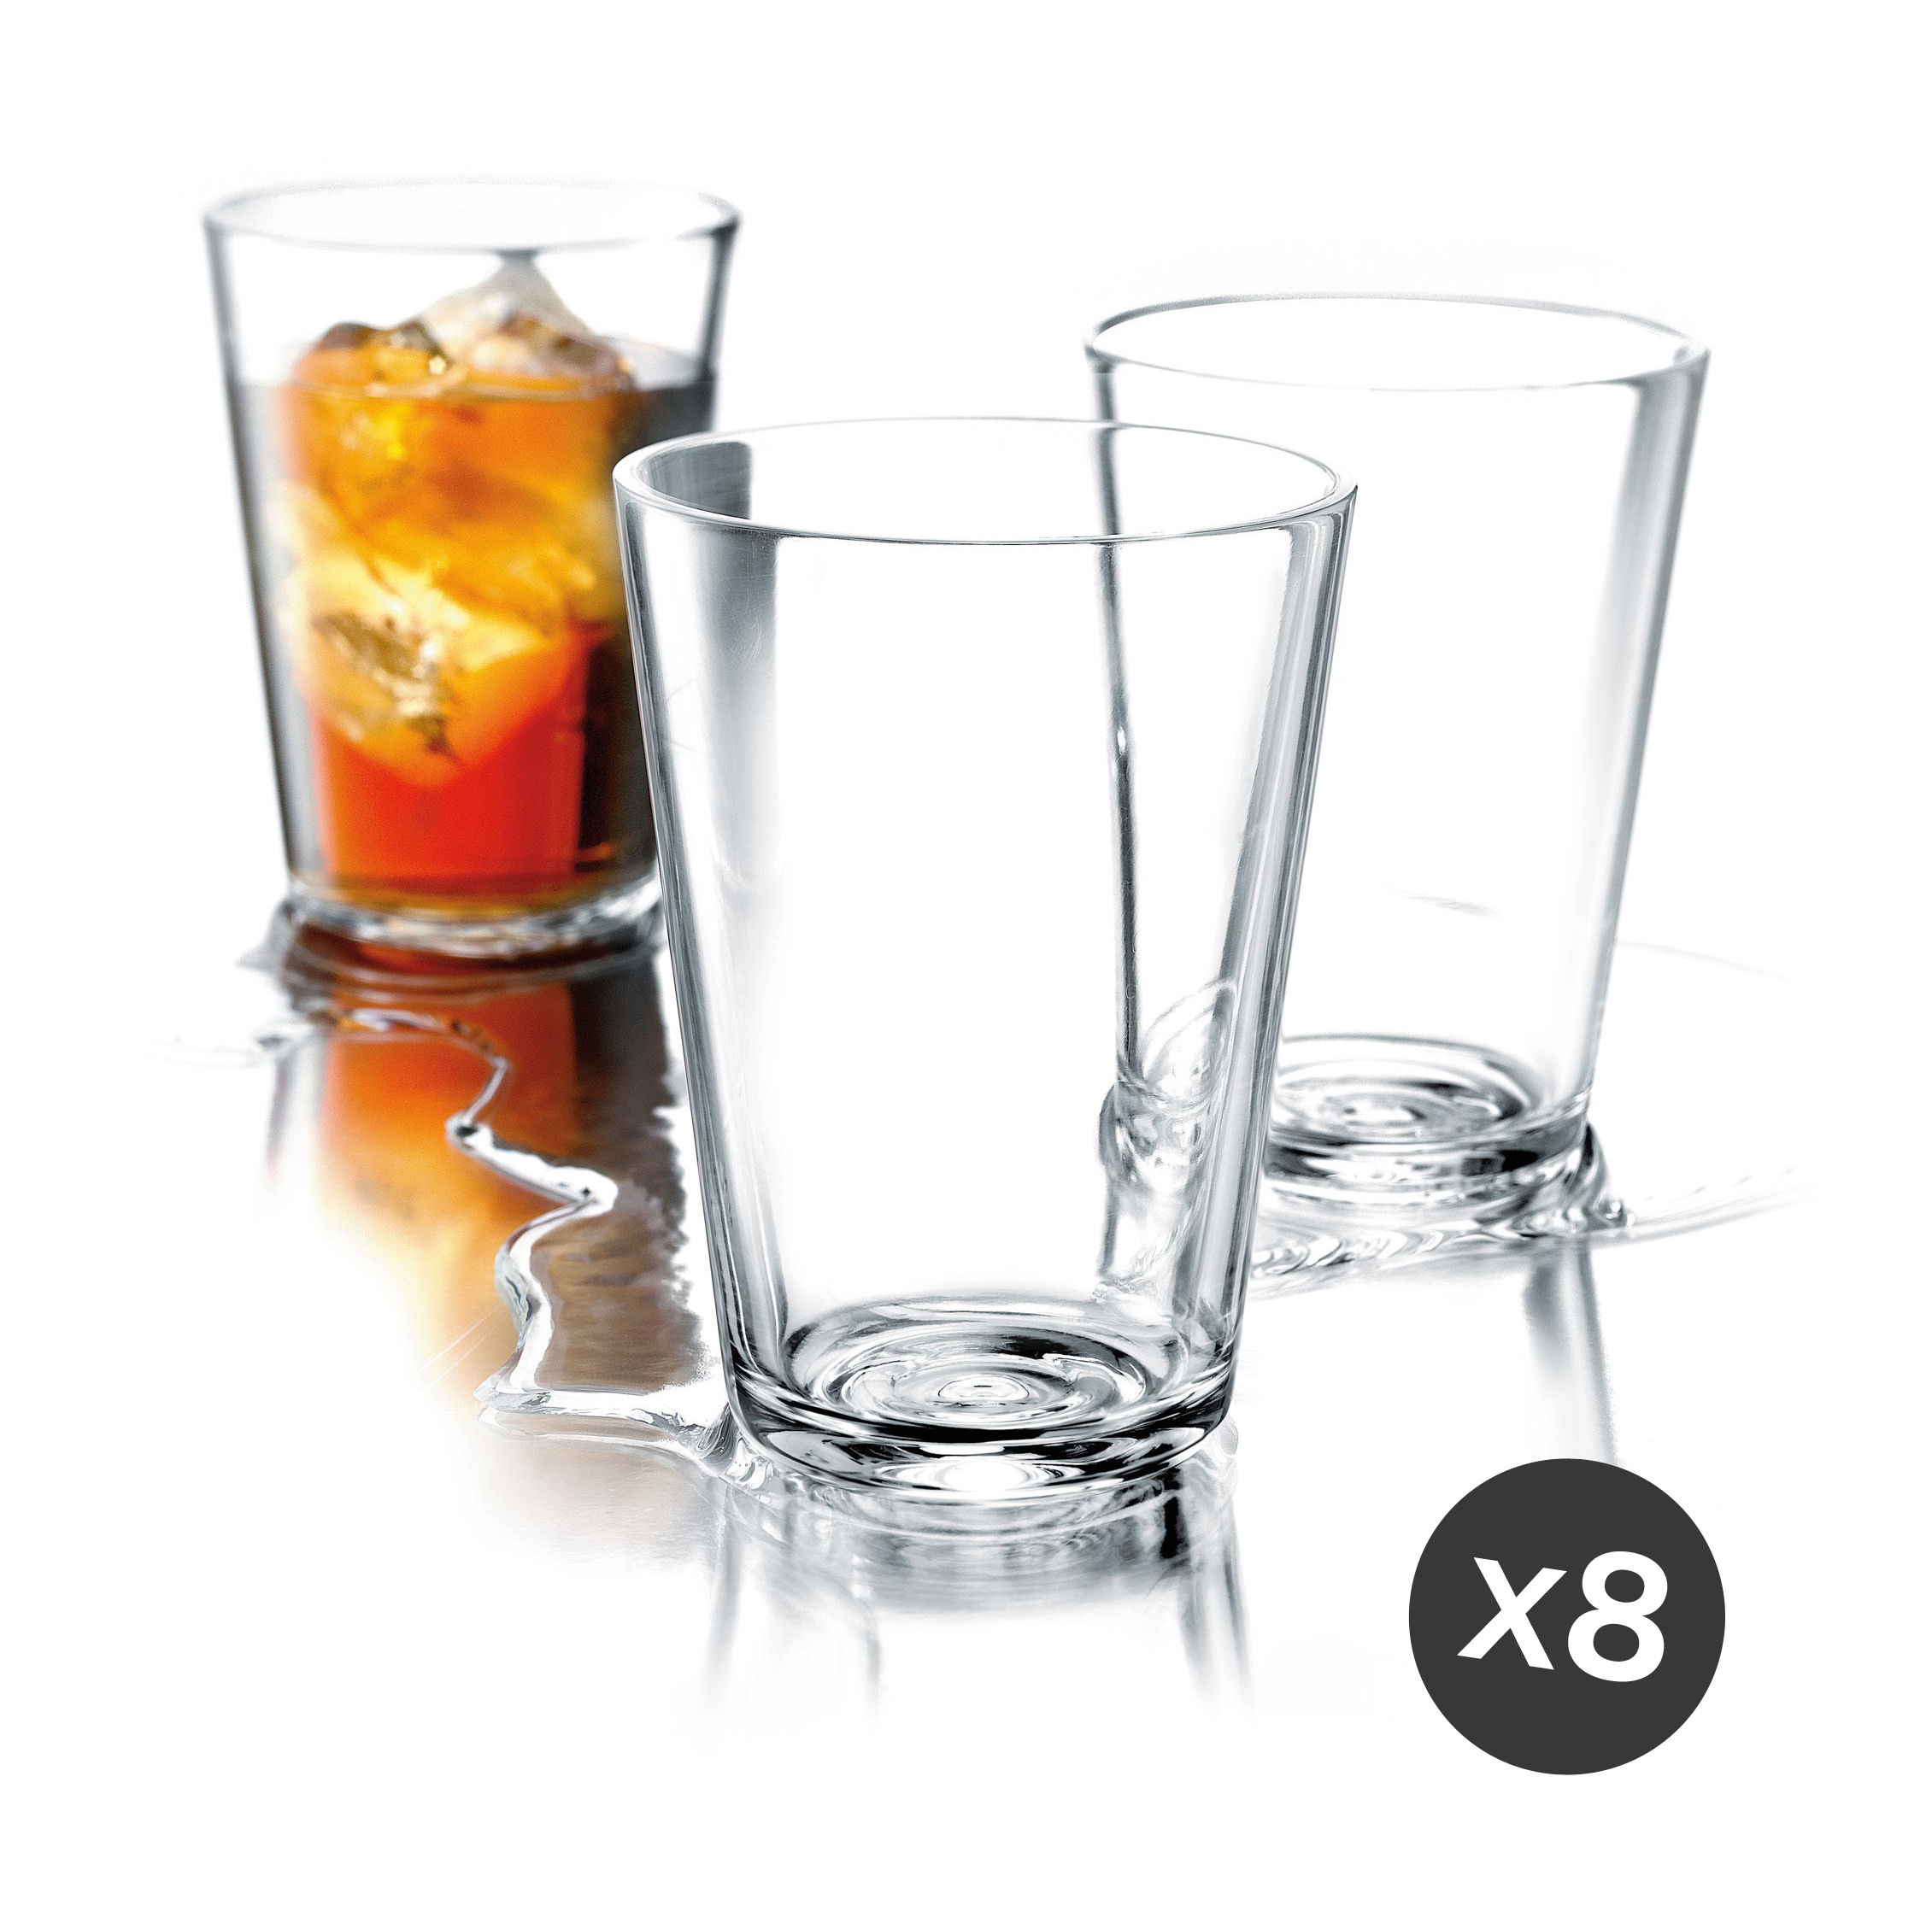 Tableware - Wine Glasses & Glassware - Glass - / Set of 8 - 38 cl by Eva Solo - Transparent - Glass